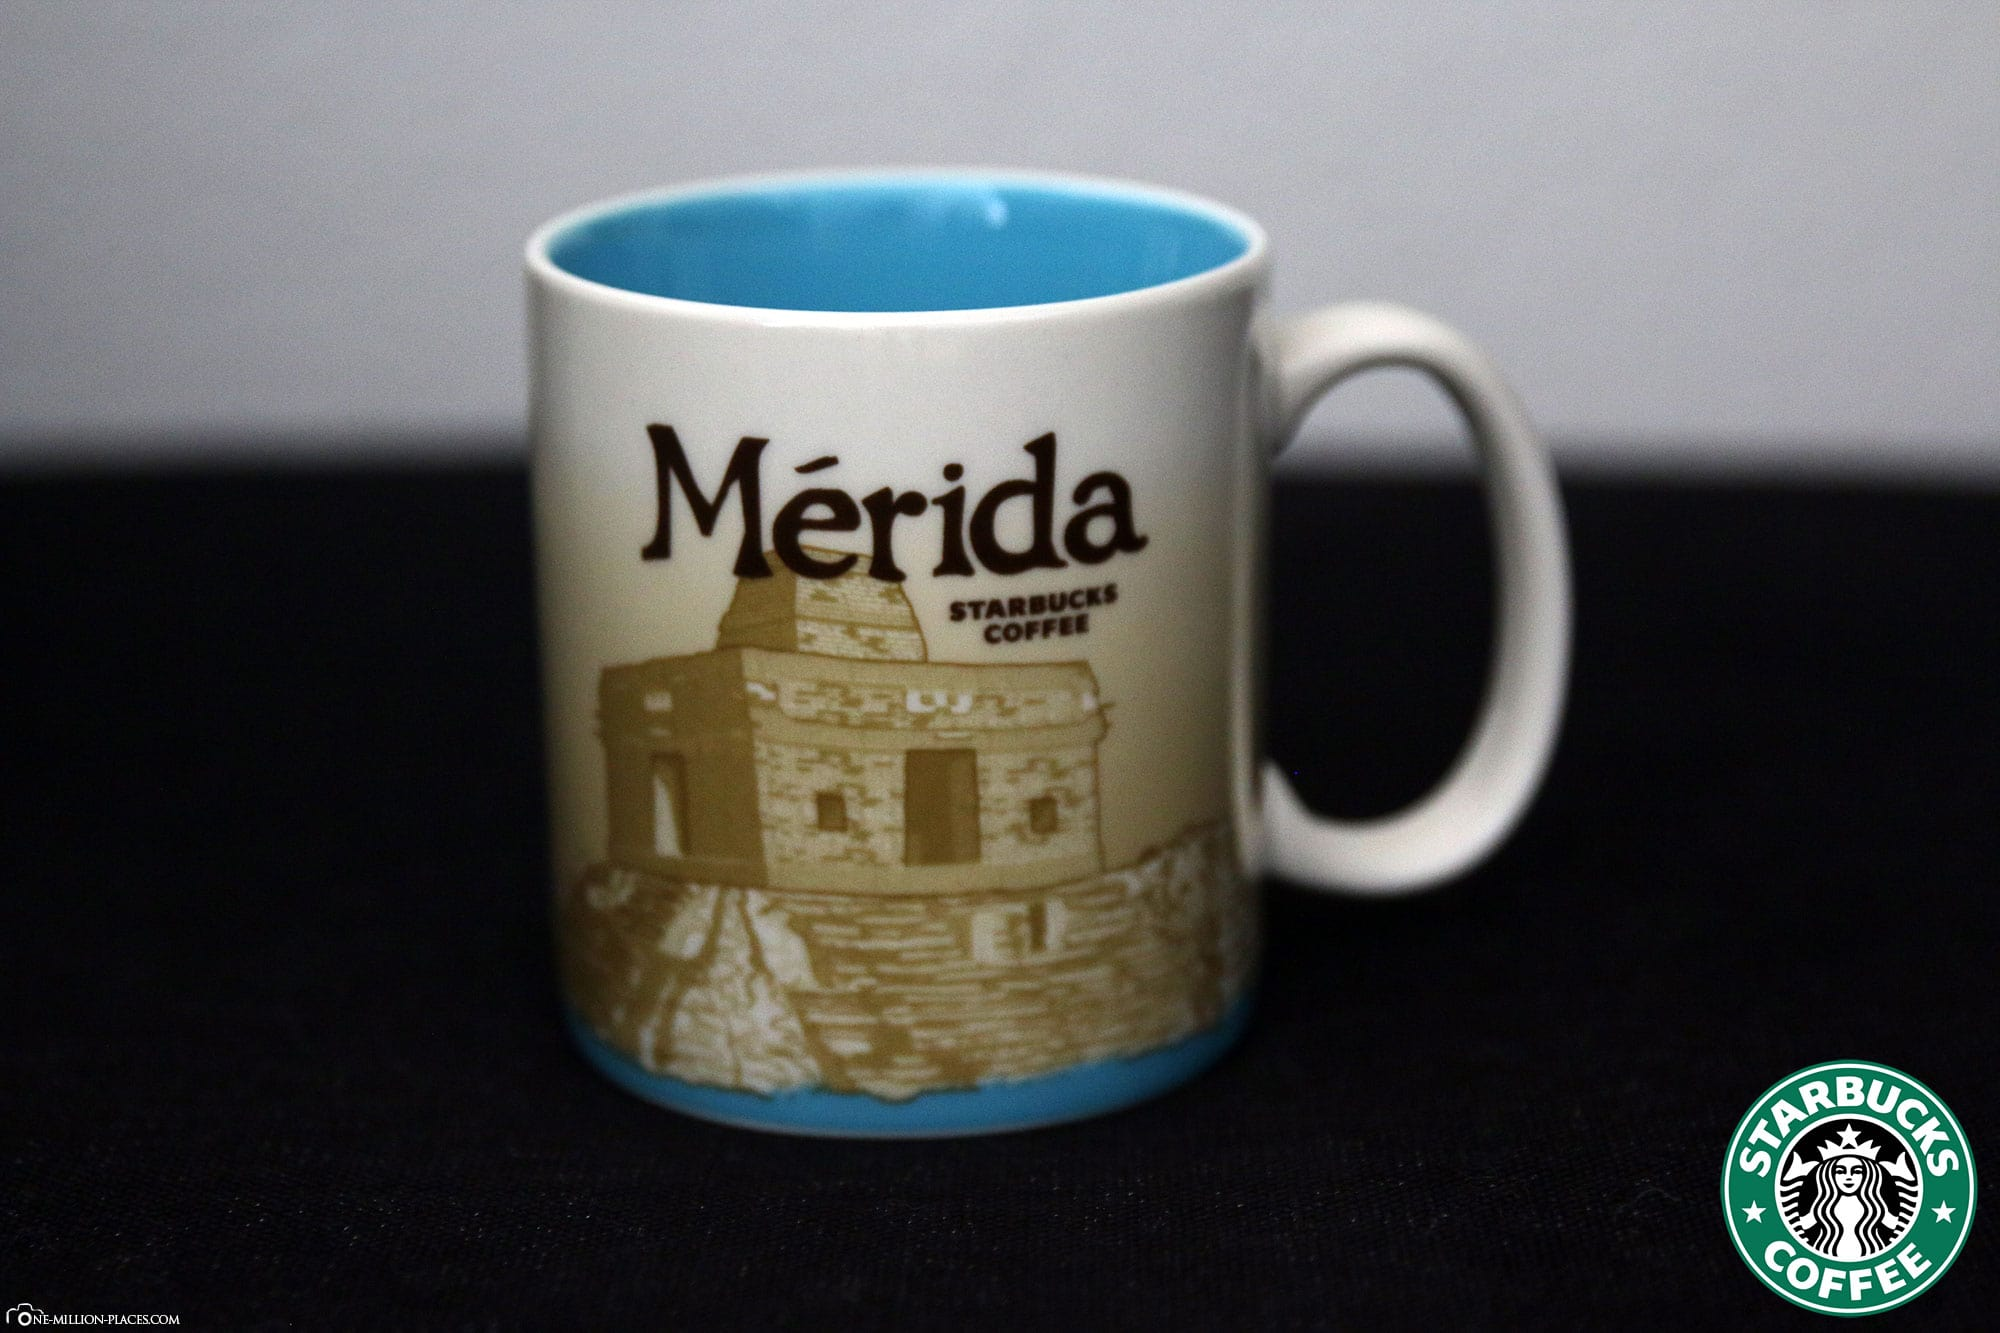 Merida, Starbucks Cup, Global Icon Series, City Mugs, Collection, Mexico, Travelreport